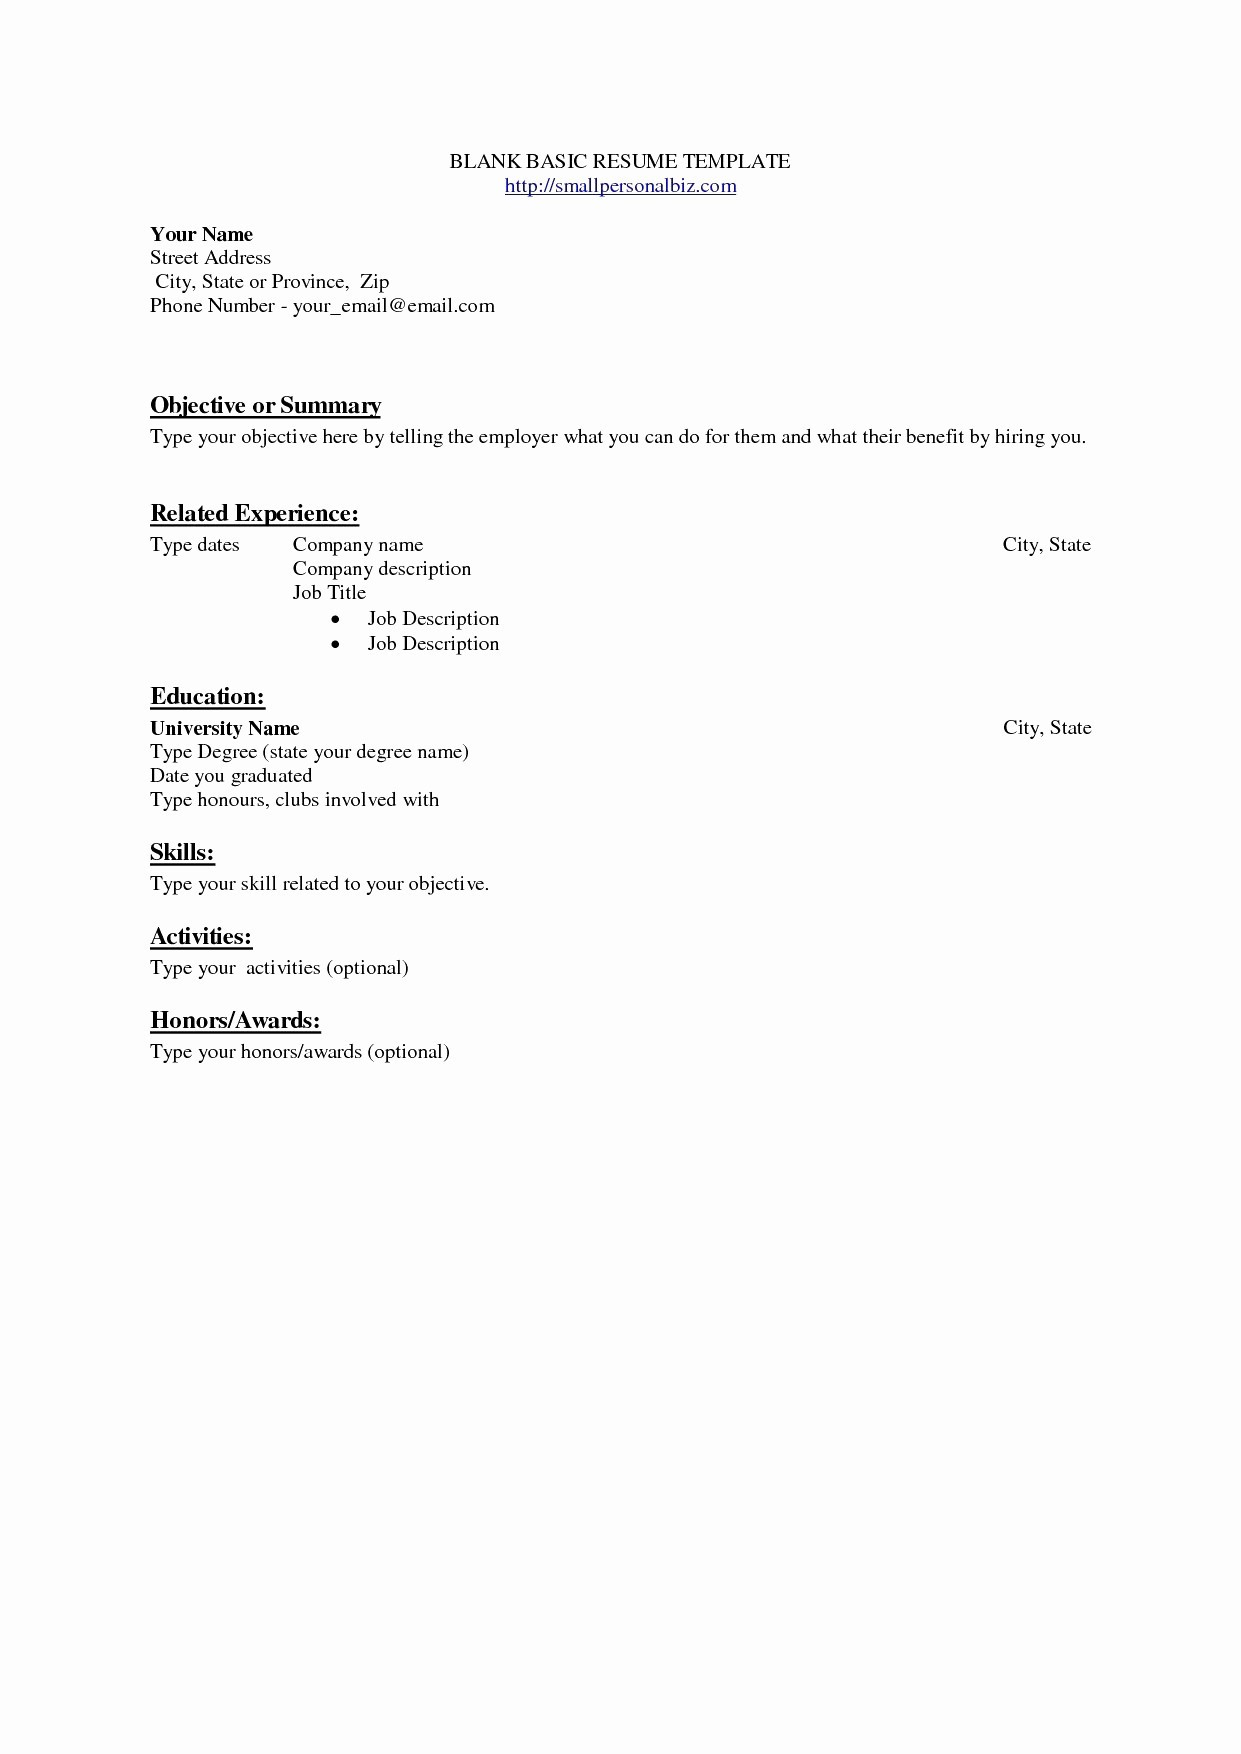 What Does It Mean by Employer Name - 34 Luxury What Does Employer Name Mean A Resume